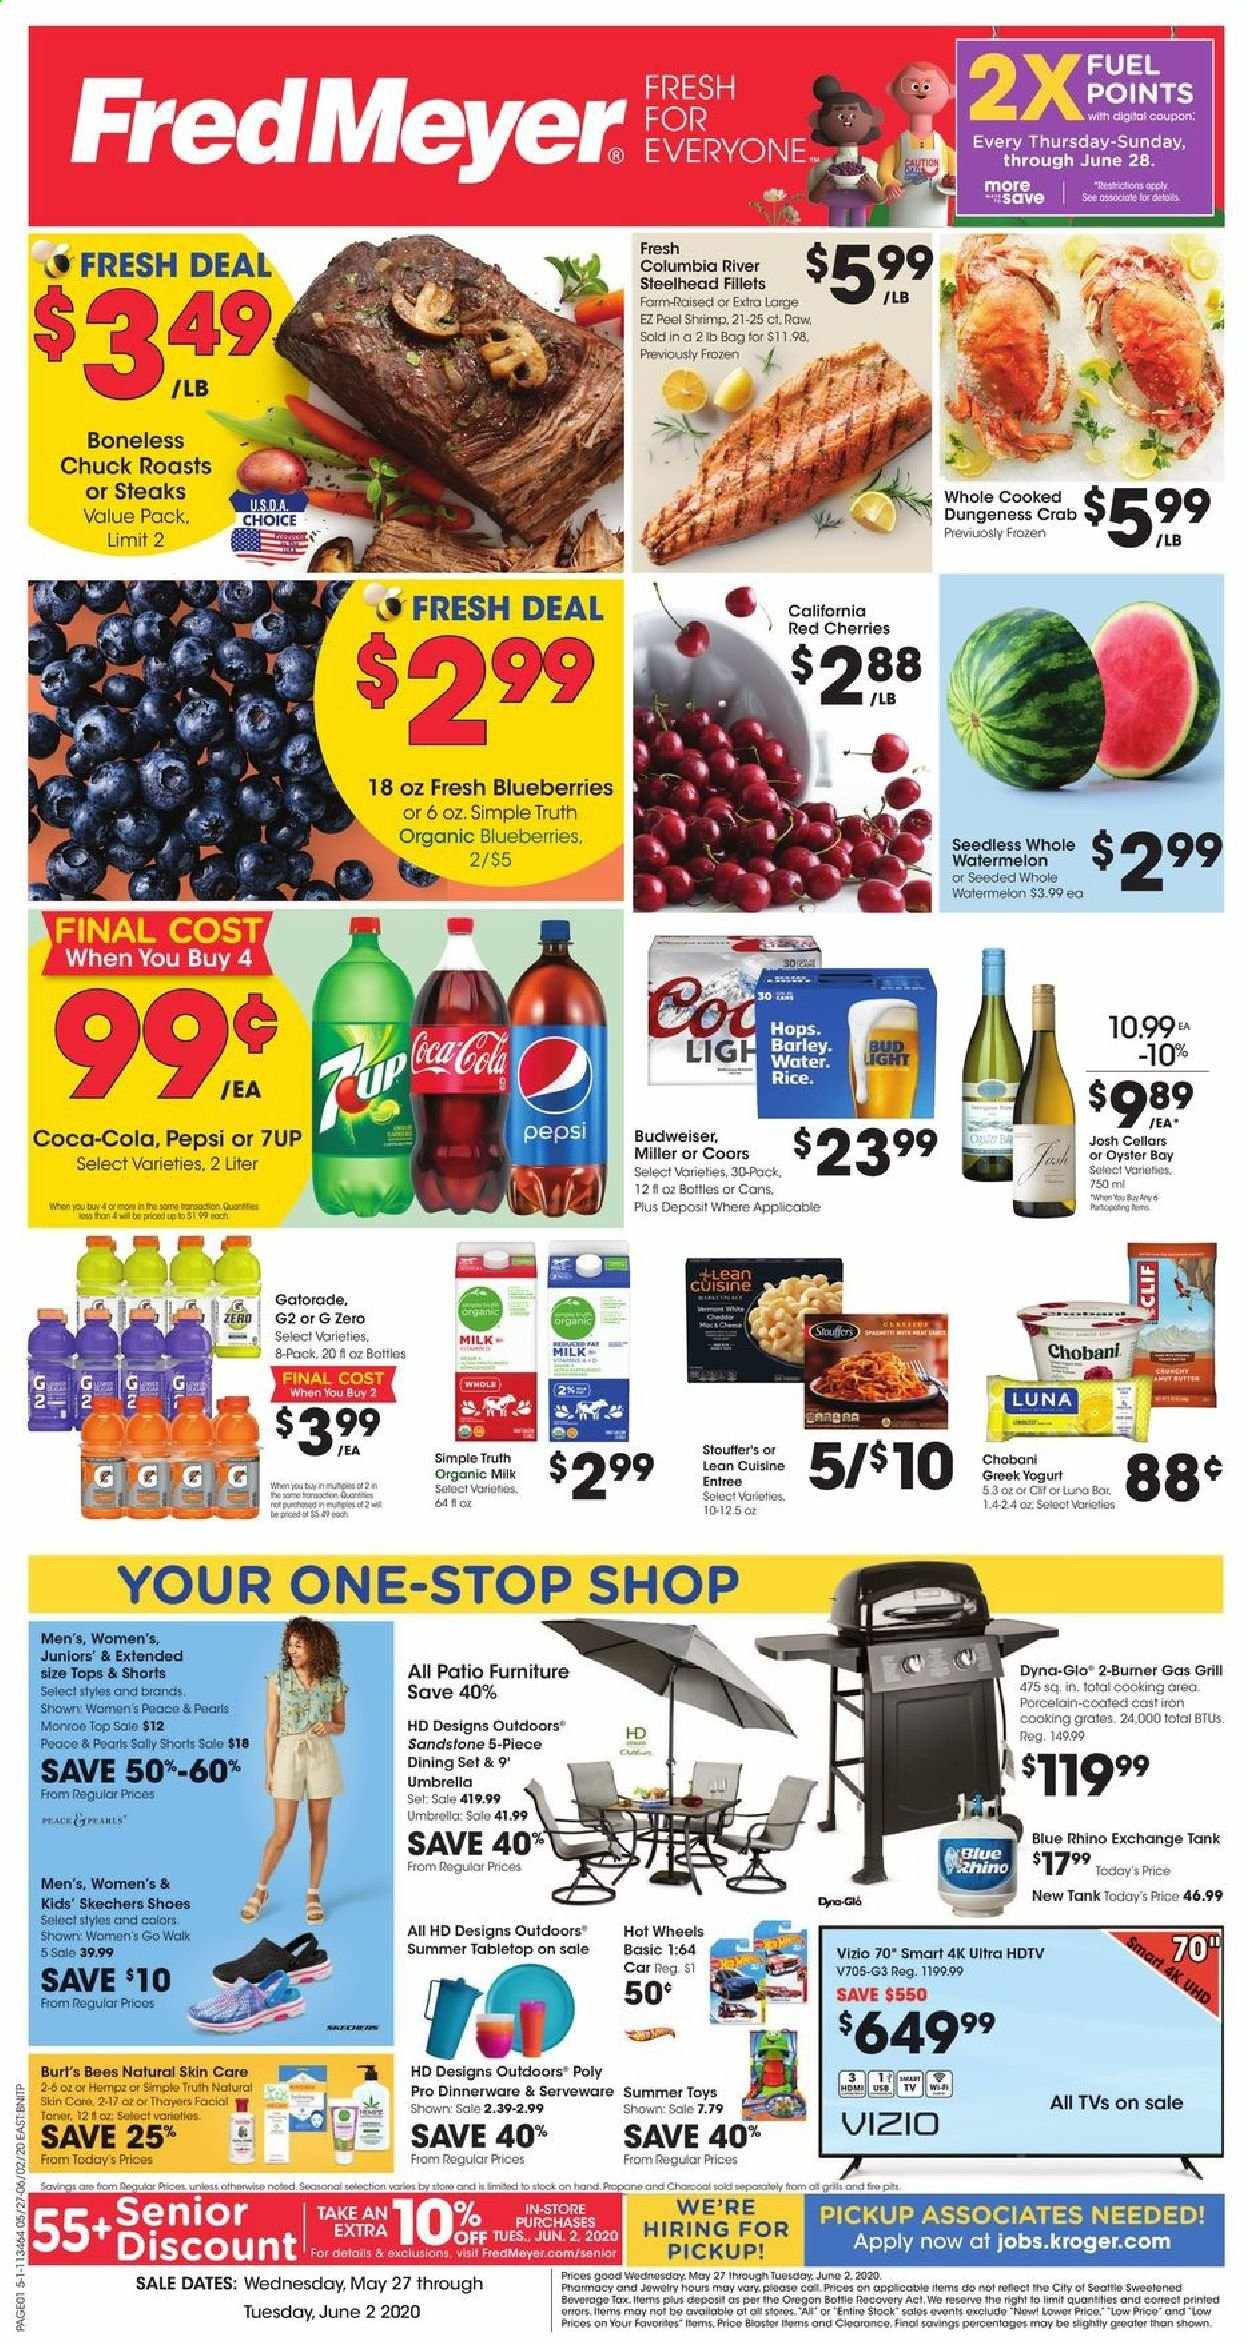 Fred Meyer Flyer  - 05.27.2020 - 06.02.2020. Page 1.